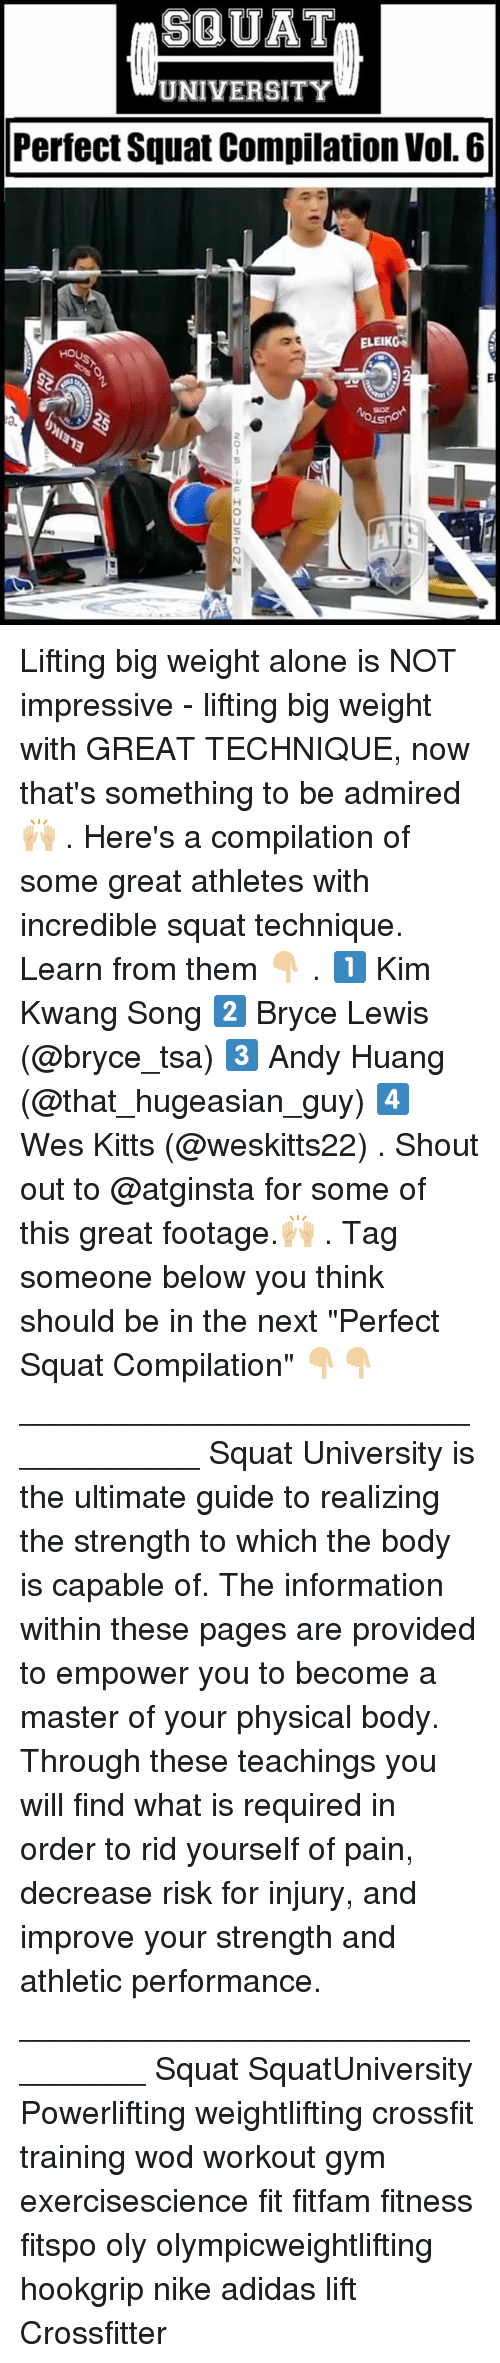 "vols: SQUAT  UNIVERSITY  Perfect Squat Compilation Vol. 6  ELEIK  0. Lifting big weight alone is NOT impressive - lifting big weight with GREAT TECHNIQUE, now that's something to be admired 🙌🏼 . Here's a compilation of some great athletes with incredible squat technique. Learn from them 👇🏼 . 1️⃣ Kim Kwang Song 2️⃣ Bryce Lewis (@bryce_tsa) 3️⃣ Andy Huang (@that_hugeasian_guy) 4️⃣ Wes Kitts (@weskitts22) . Shout out to @atginsta for some of this great footage.🙌🏼 . Tag someone below you think should be in the next ""Perfect Squat Compilation"" 👇🏼👇🏼 ___________________________________ Squat University is the ultimate guide to realizing the strength to which the body is capable of. The information within these pages are provided to empower you to become a master of your physical body. Through these teachings you will find what is required in order to rid yourself of pain, decrease risk for injury, and improve your strength and athletic performance. ________________________________ Squat SquatUniversity Powerlifting weightlifting crossfit training wod workout gym exercisescience fit fitfam fitness fitspo oly olympicweightlifting hookgrip nike adidas lift Crossfitter"